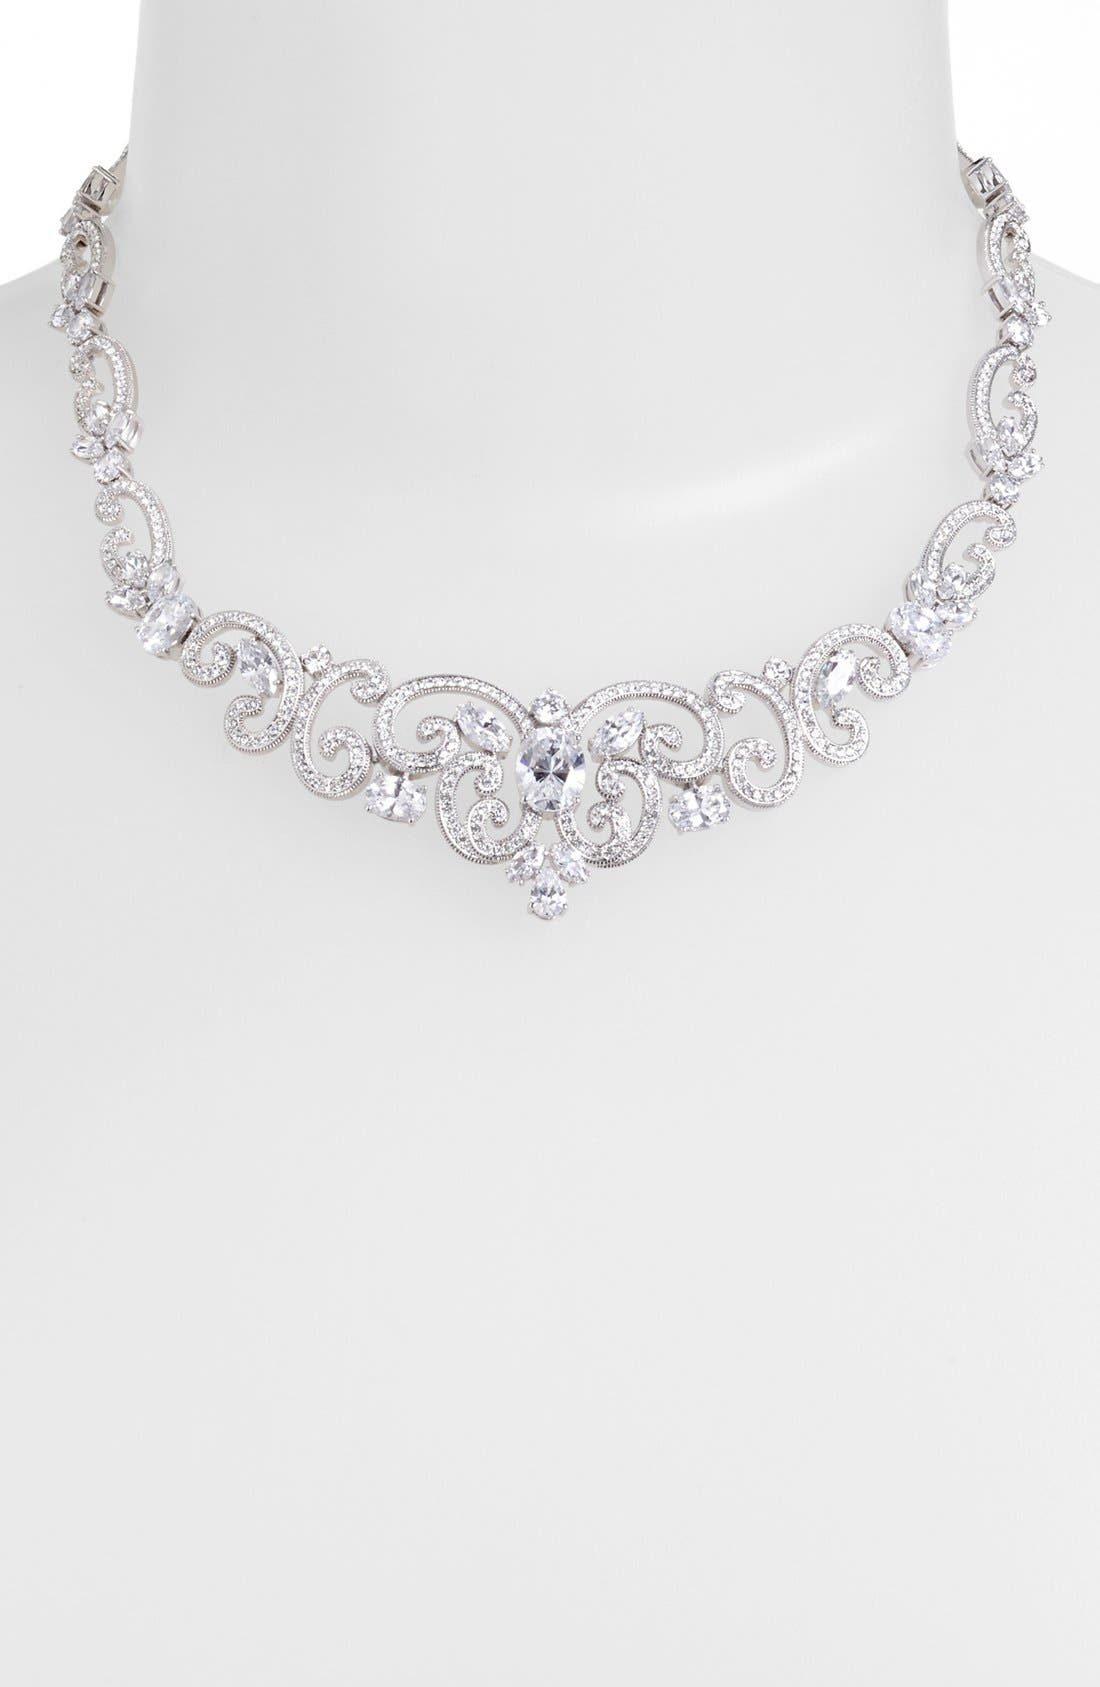 Main Image - Nadri Frontal Necklace